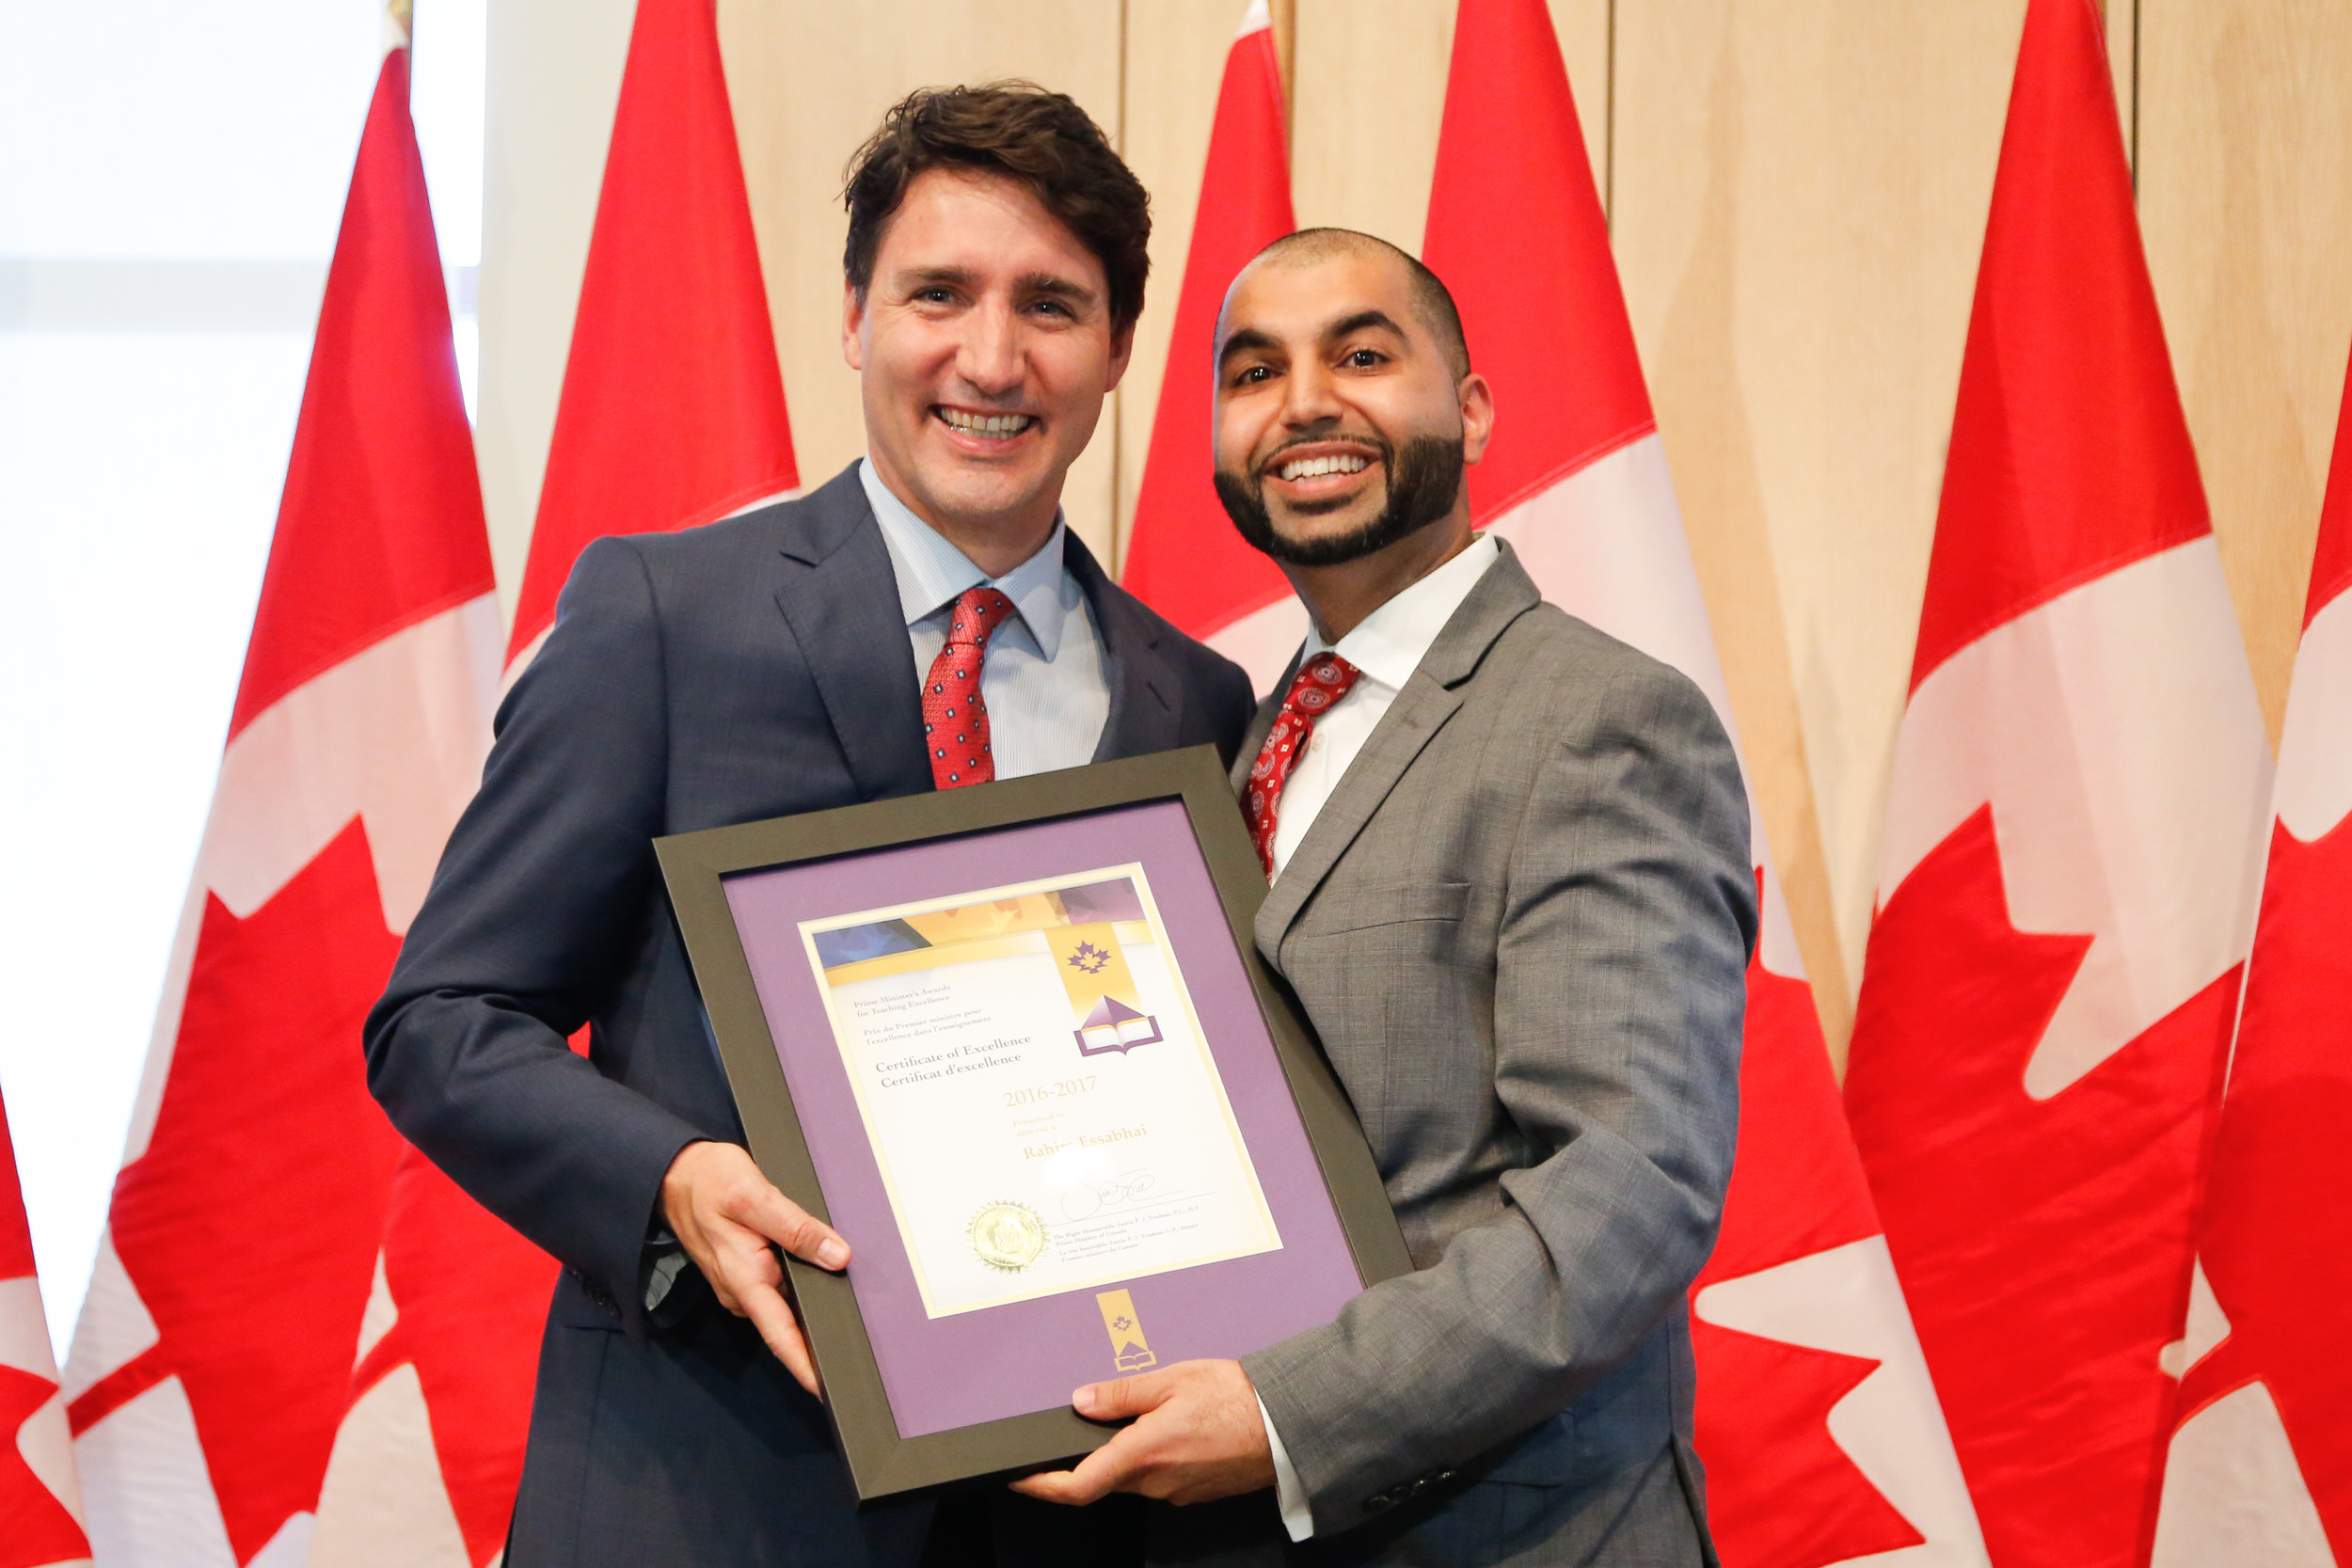 This program is co-facilitated with Rahim Essabhai. Rahim is a grade 12 Business Leadership teacher in the Toronto District School Board. In his course, students spend 6-8 weeks consulting to an organization using Integrative Thinking. Rahim won the 2016 Prime Minister's Award for Teaching Excellence for this work.   You can see his students' work on Twitter @mressabhai.